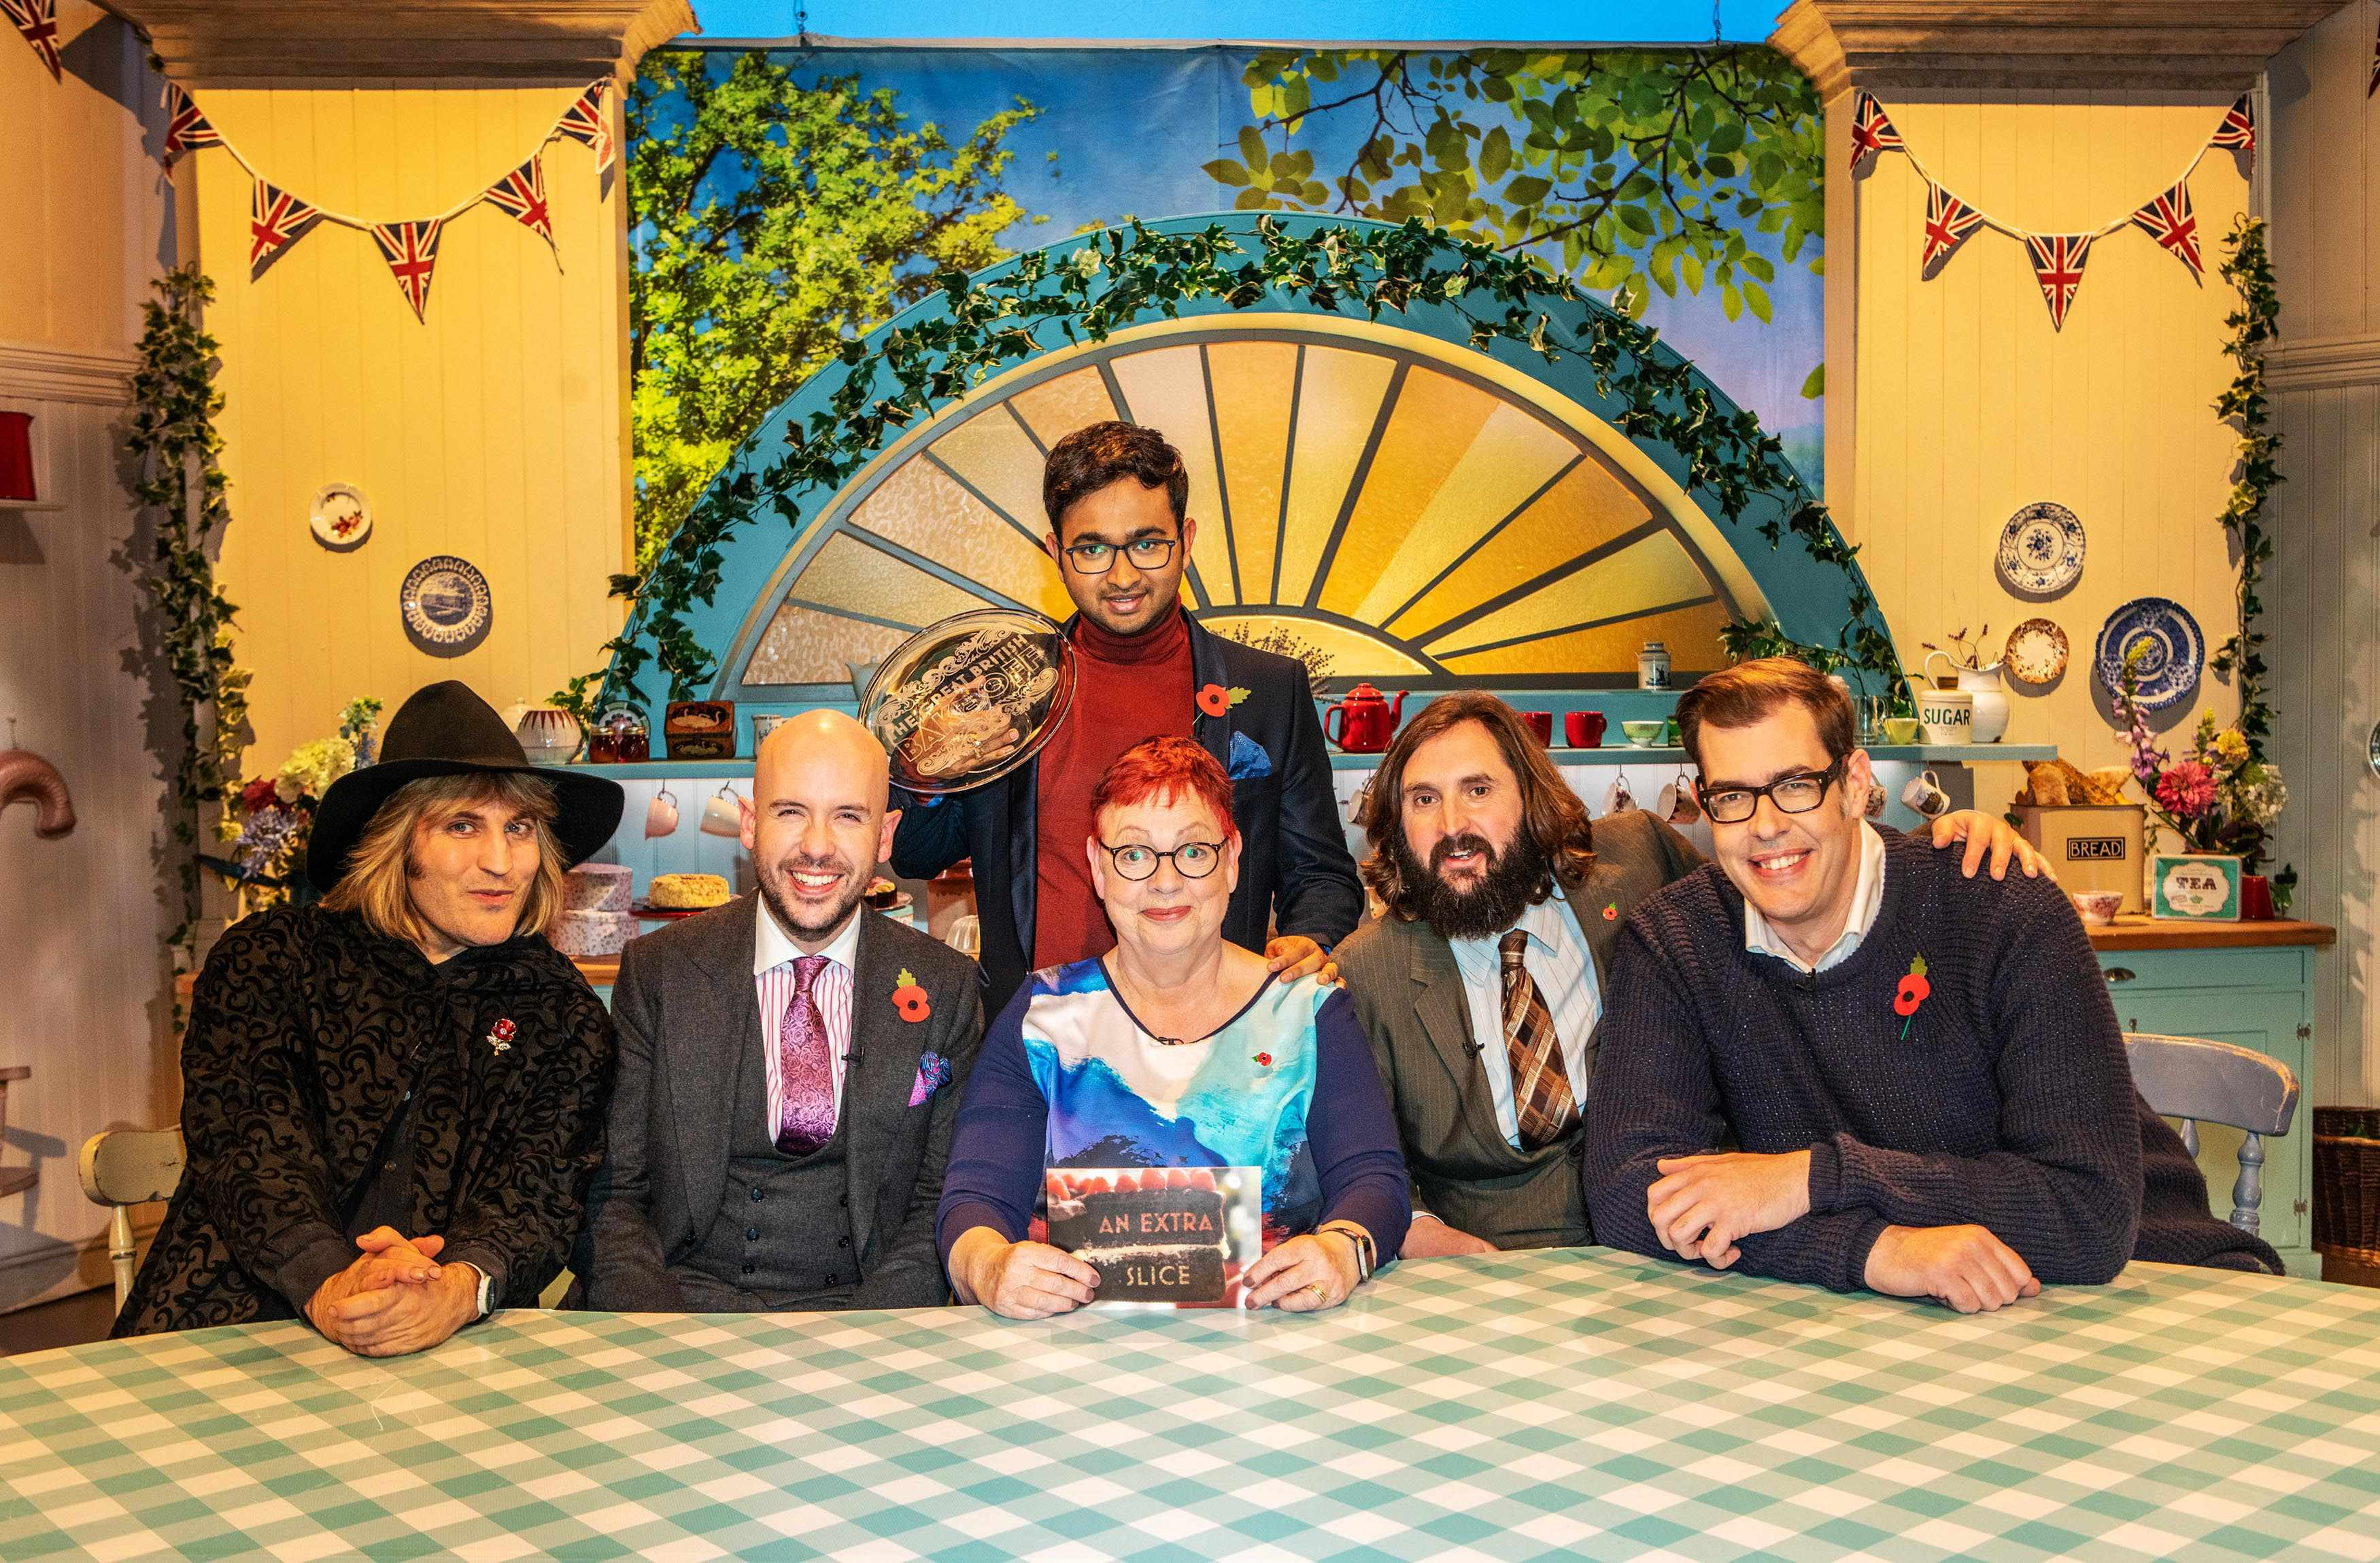 Noel Fielding, Tom Allen, Rahul, Jo Brand, Joe Wilkinson and Richard Osman in Great British Bake Off An Extra Slice